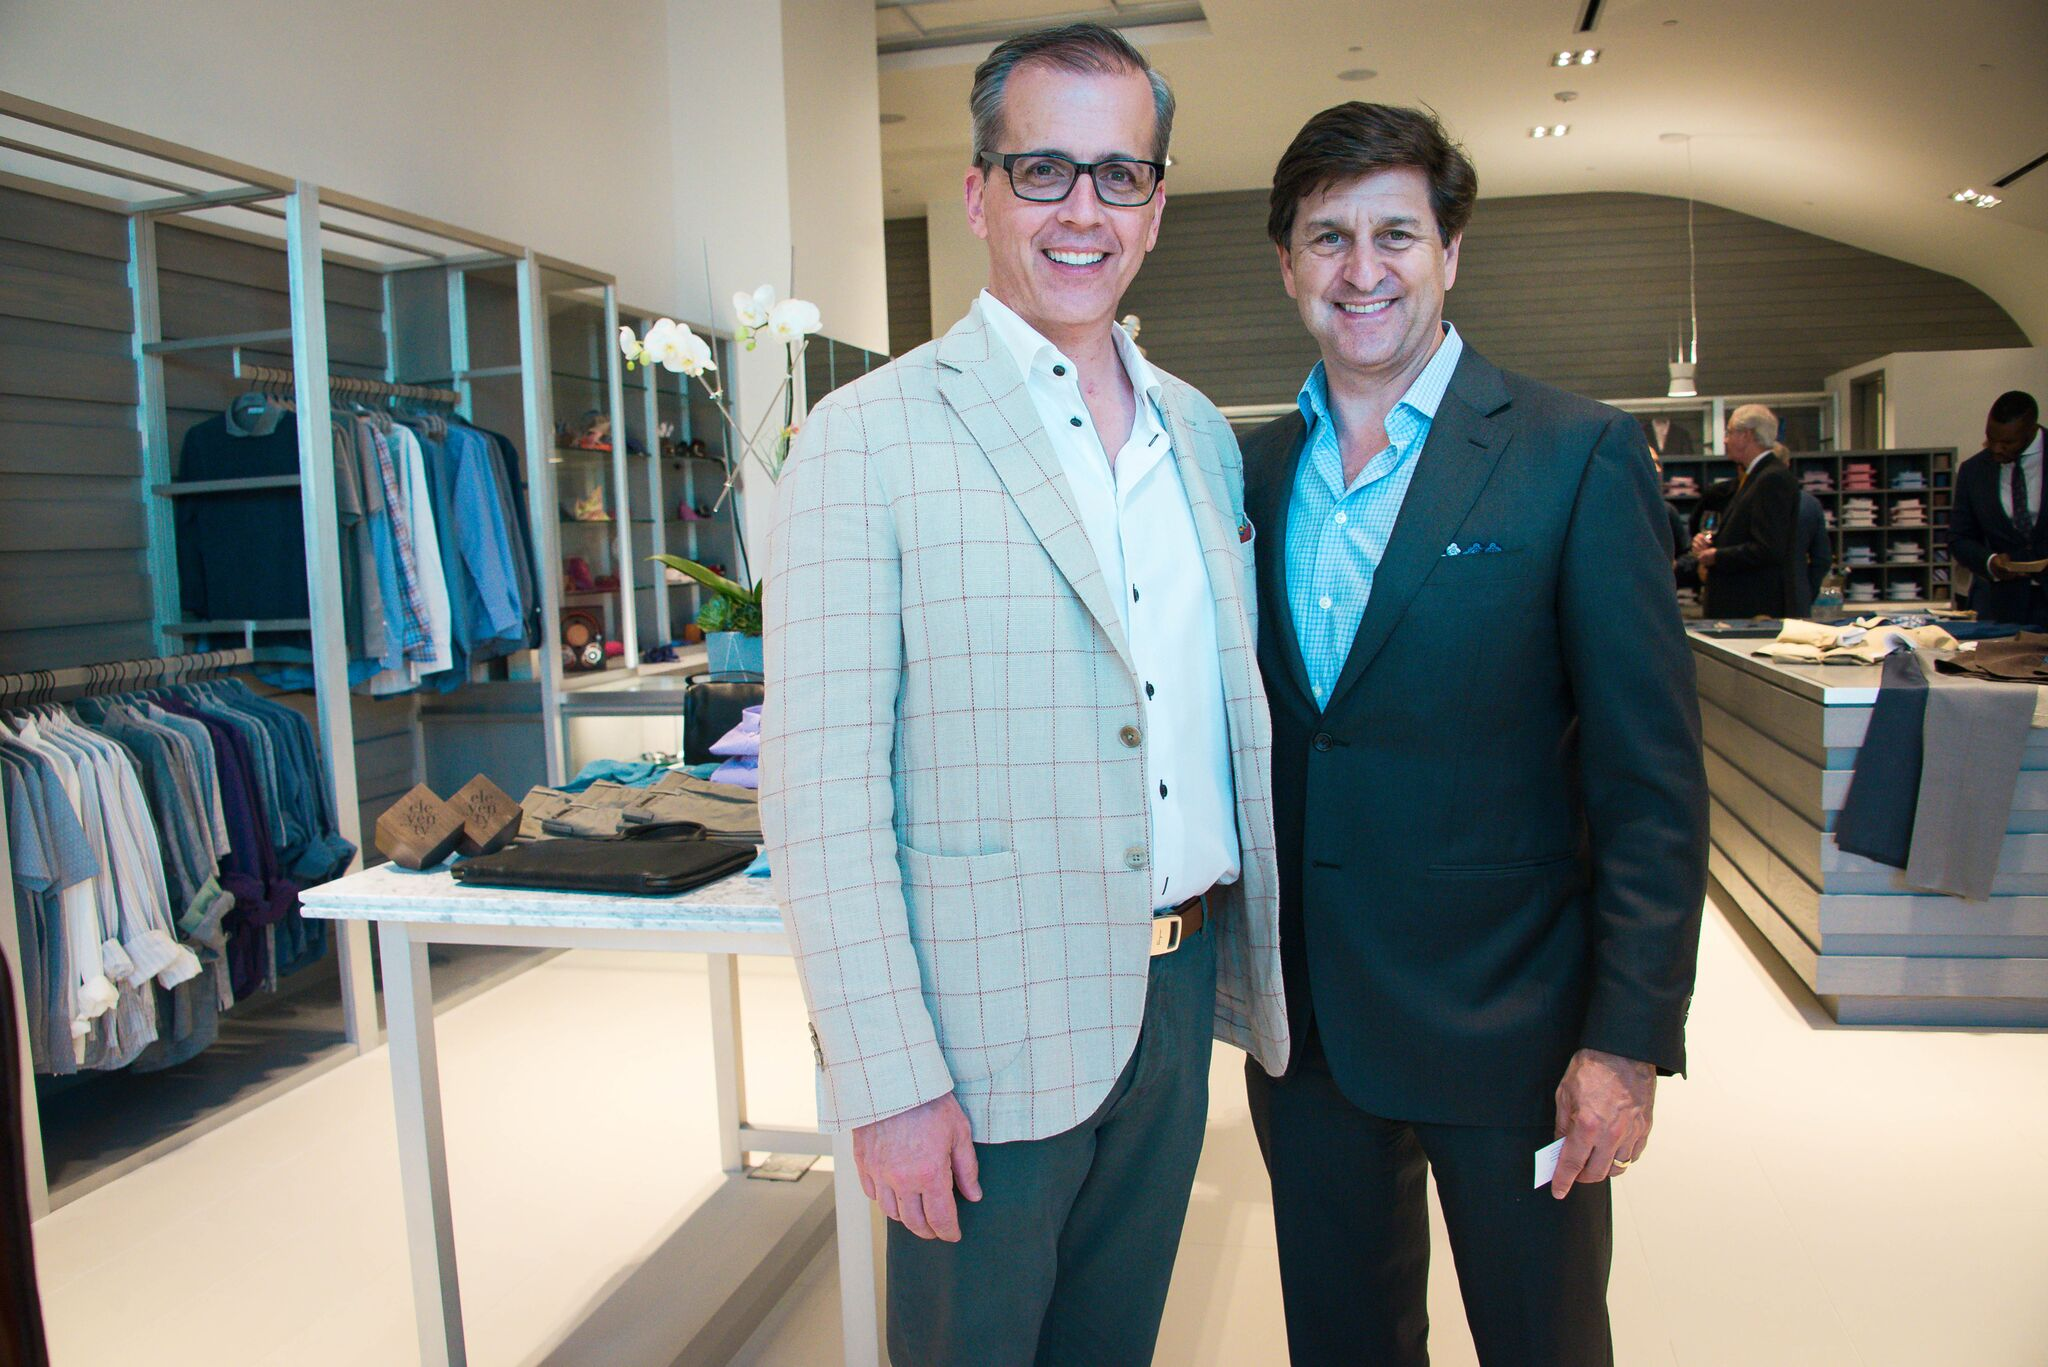 Peter_Braster_Mark_Masinter_Pockets_Menswear_Legacy_West_Plano